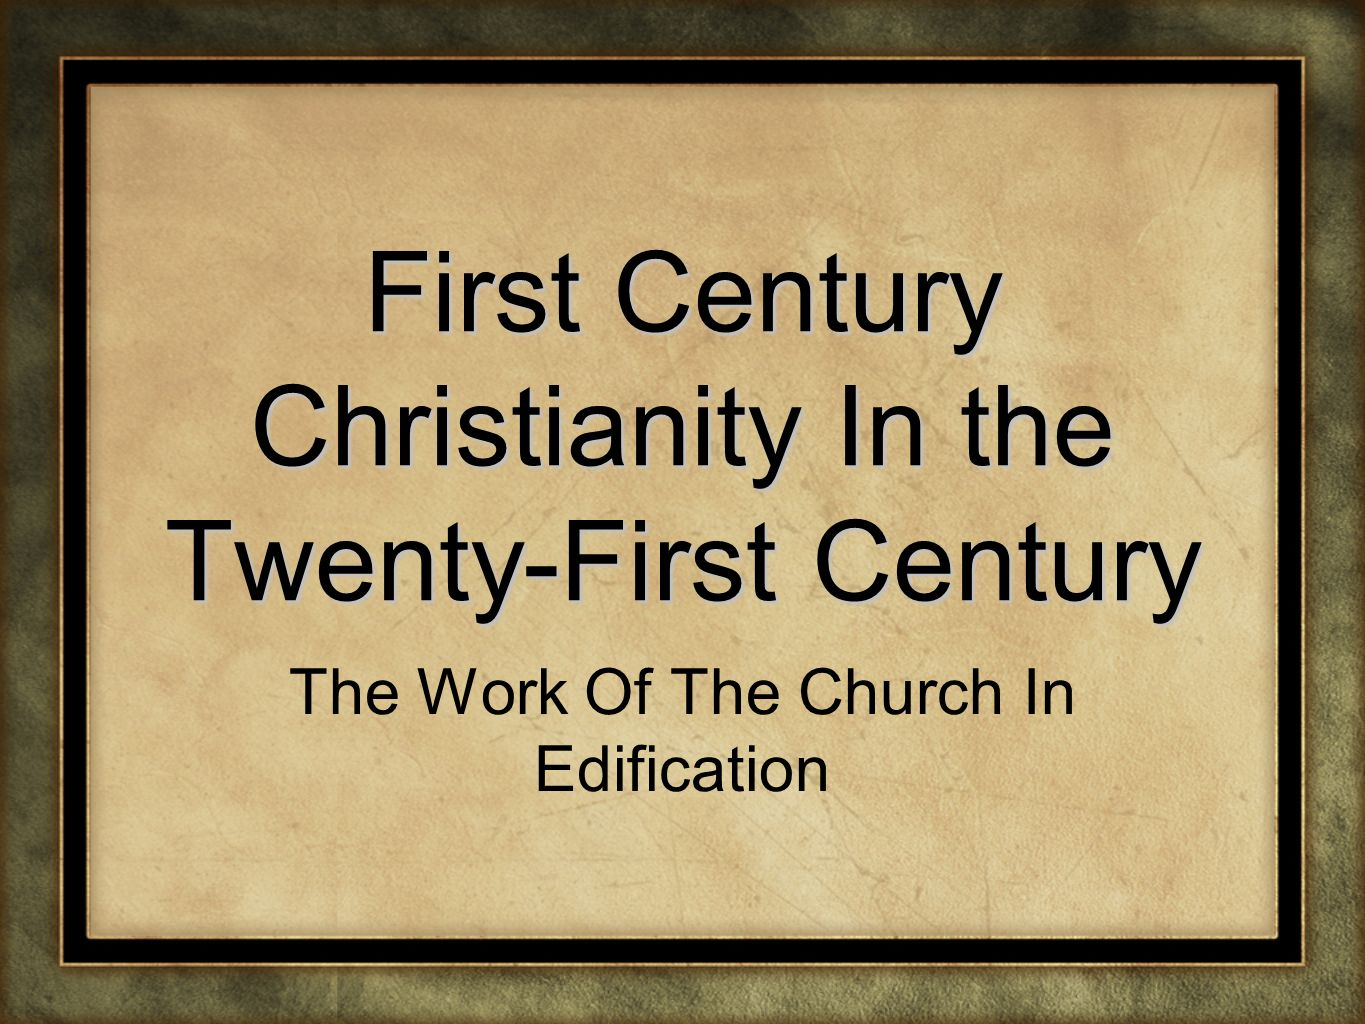 First Century Christianity In the Twenty-First Century The Work Of The Church In Edification